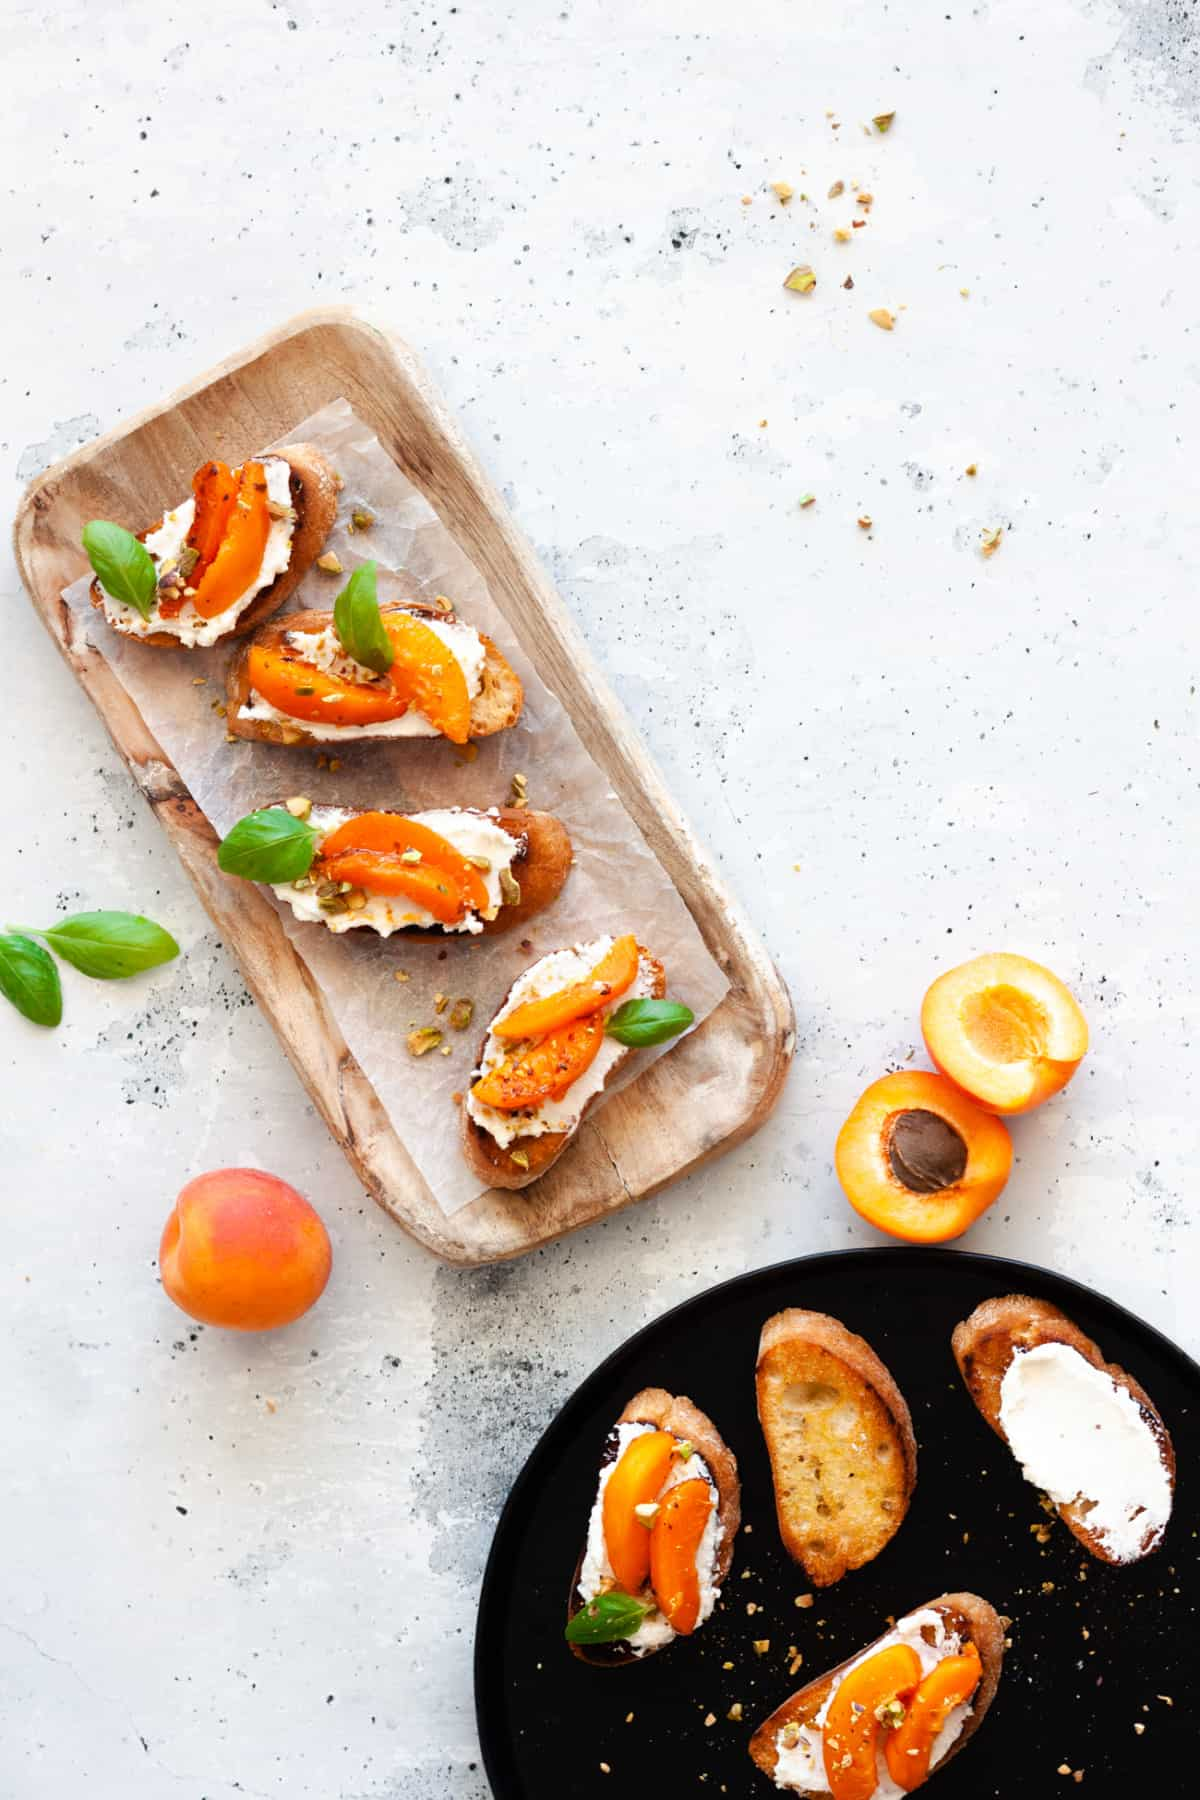 whipped ricotta crostini with sliced apricots and fresh basil leaves